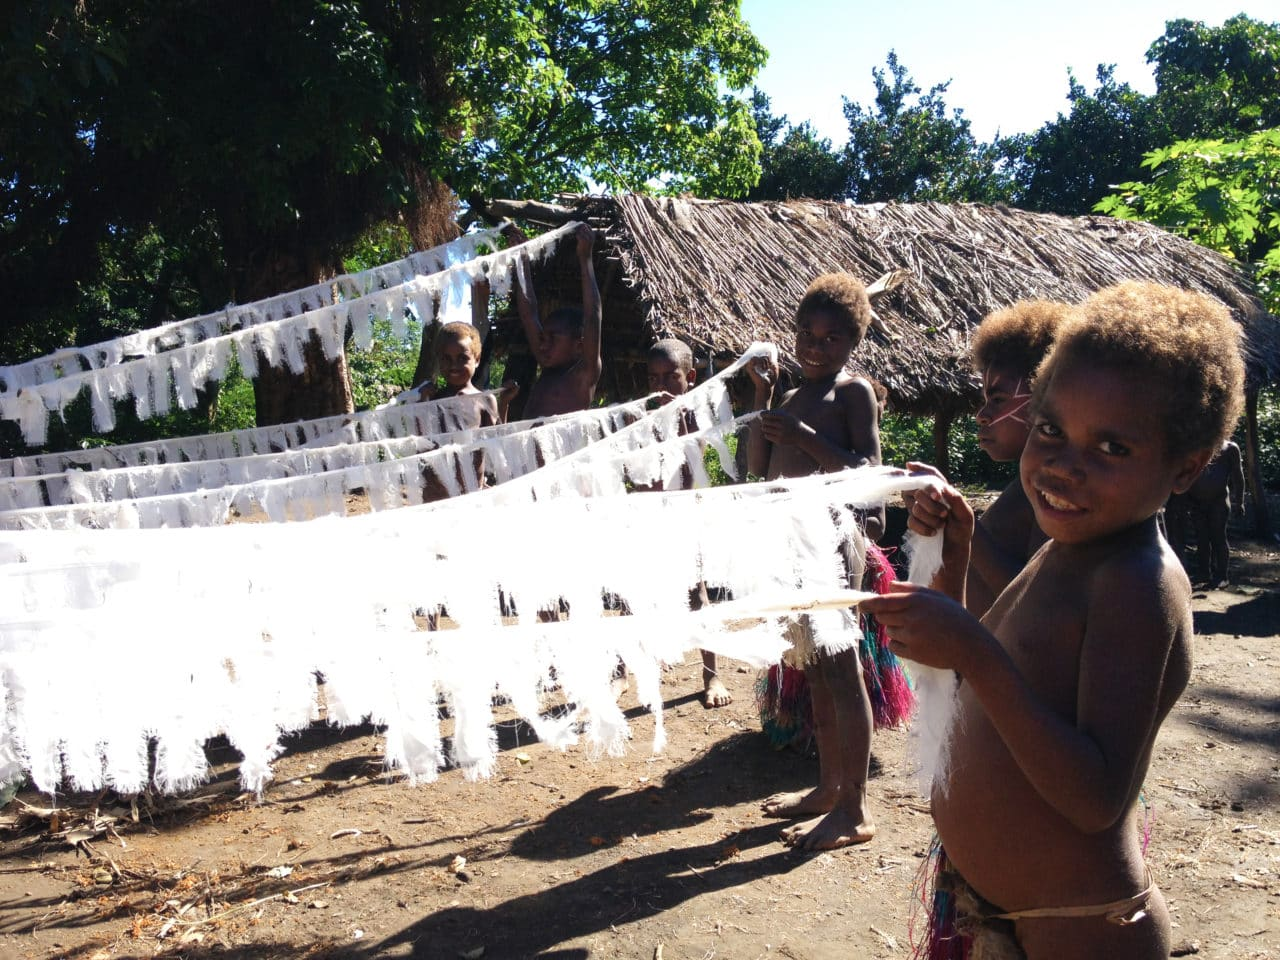 The people of Vanuatu with Tiago Valente's textiles